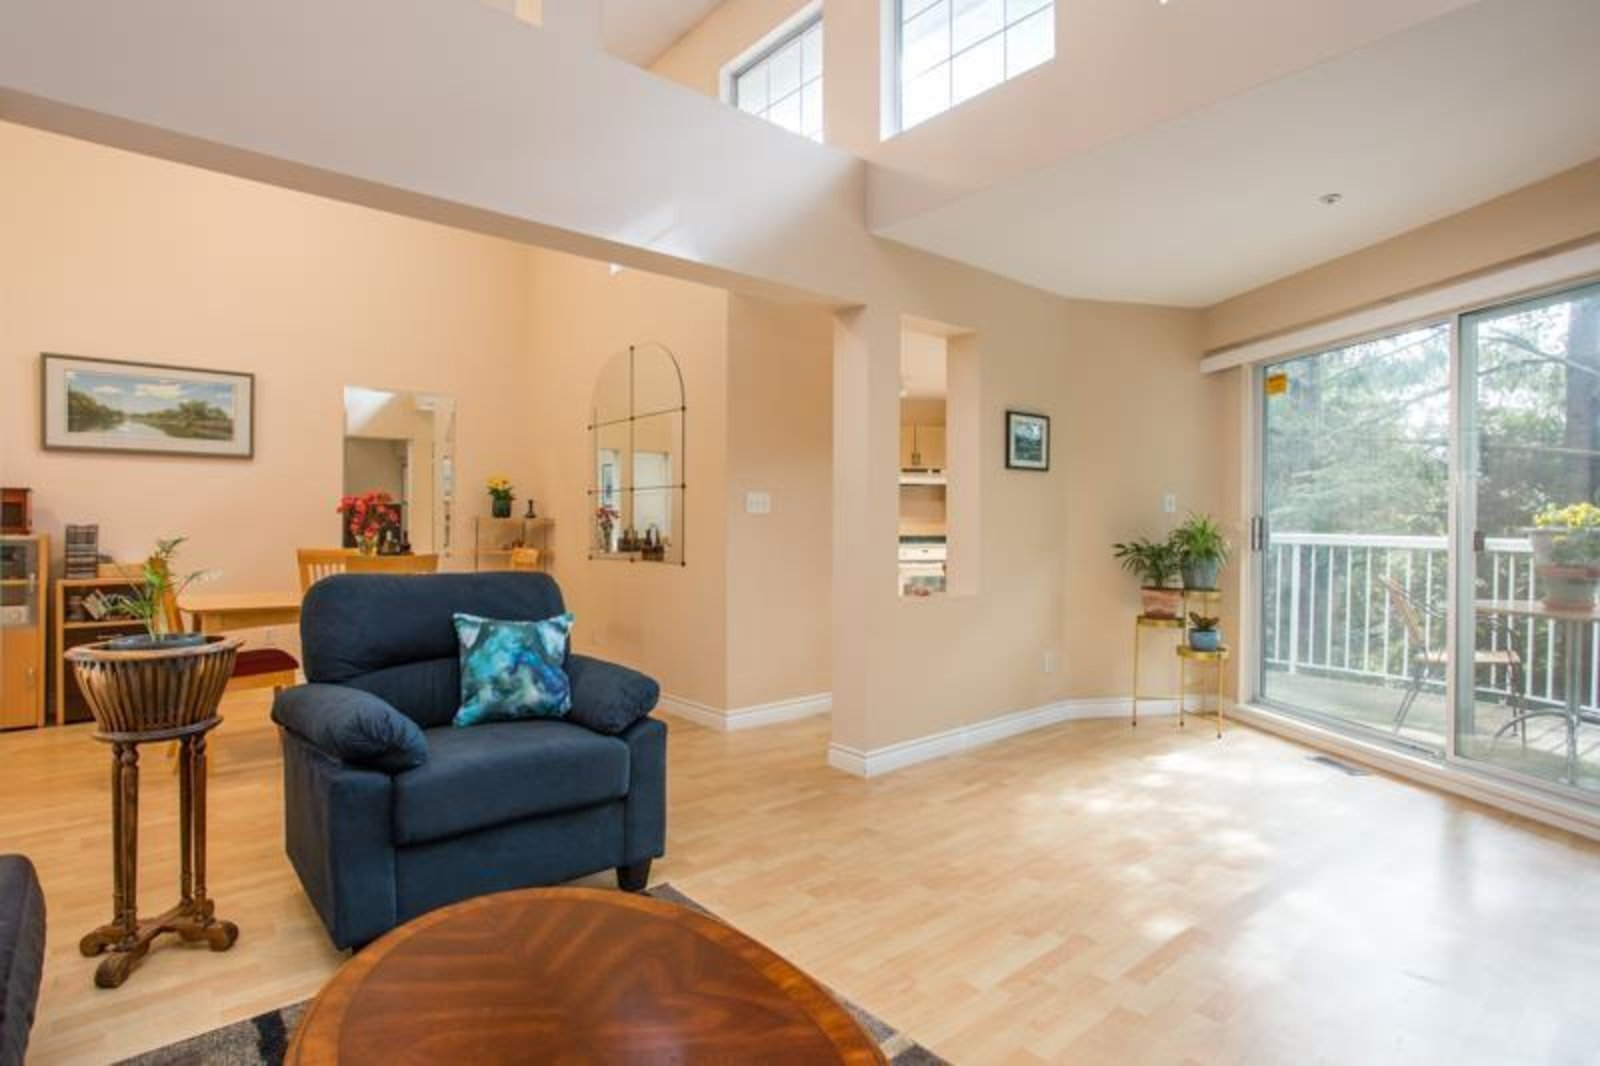 Sold 3406 Amberly Place Vancouver On May 2021 View Sold Price Bccondosandhomes